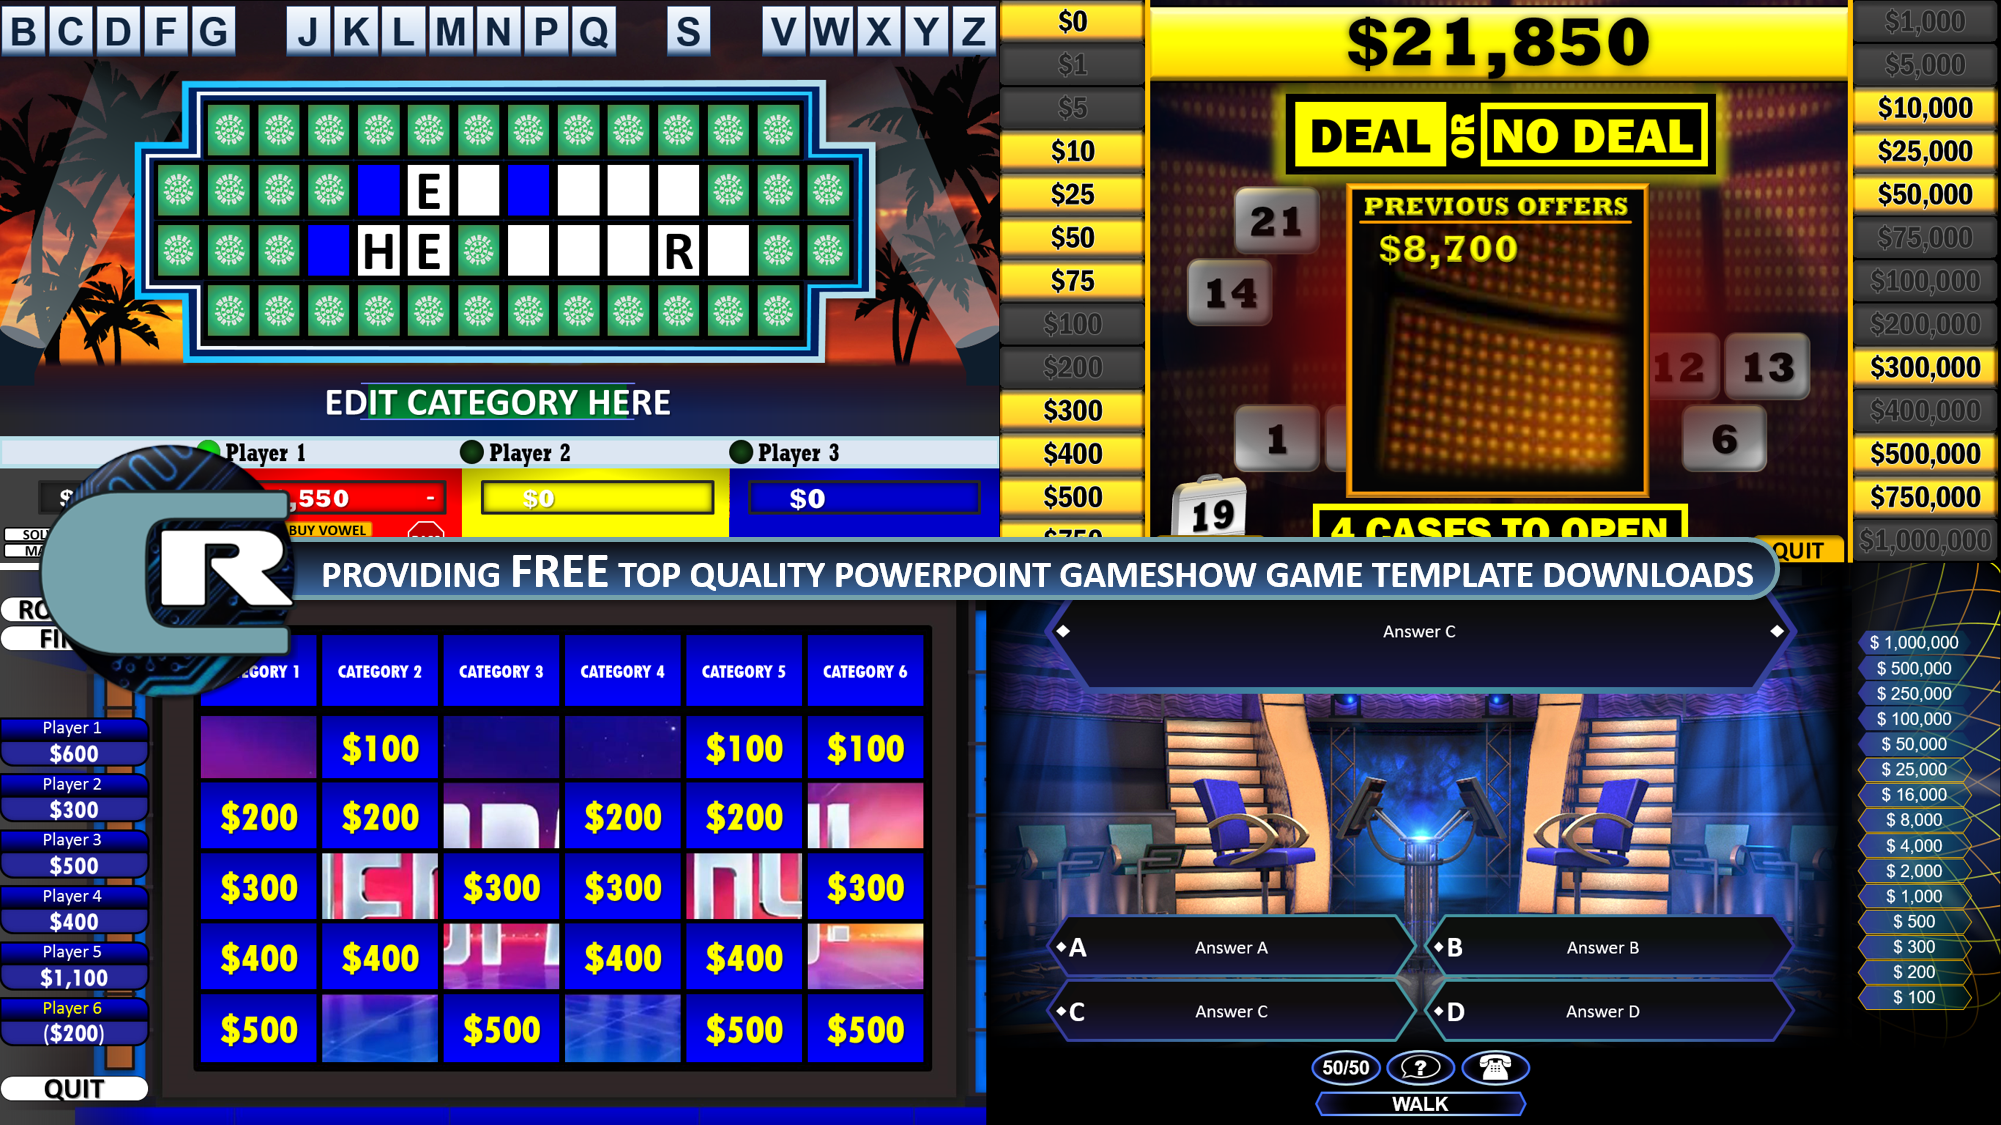 Download The Best Free Powerpoint Games Jeopardy Family